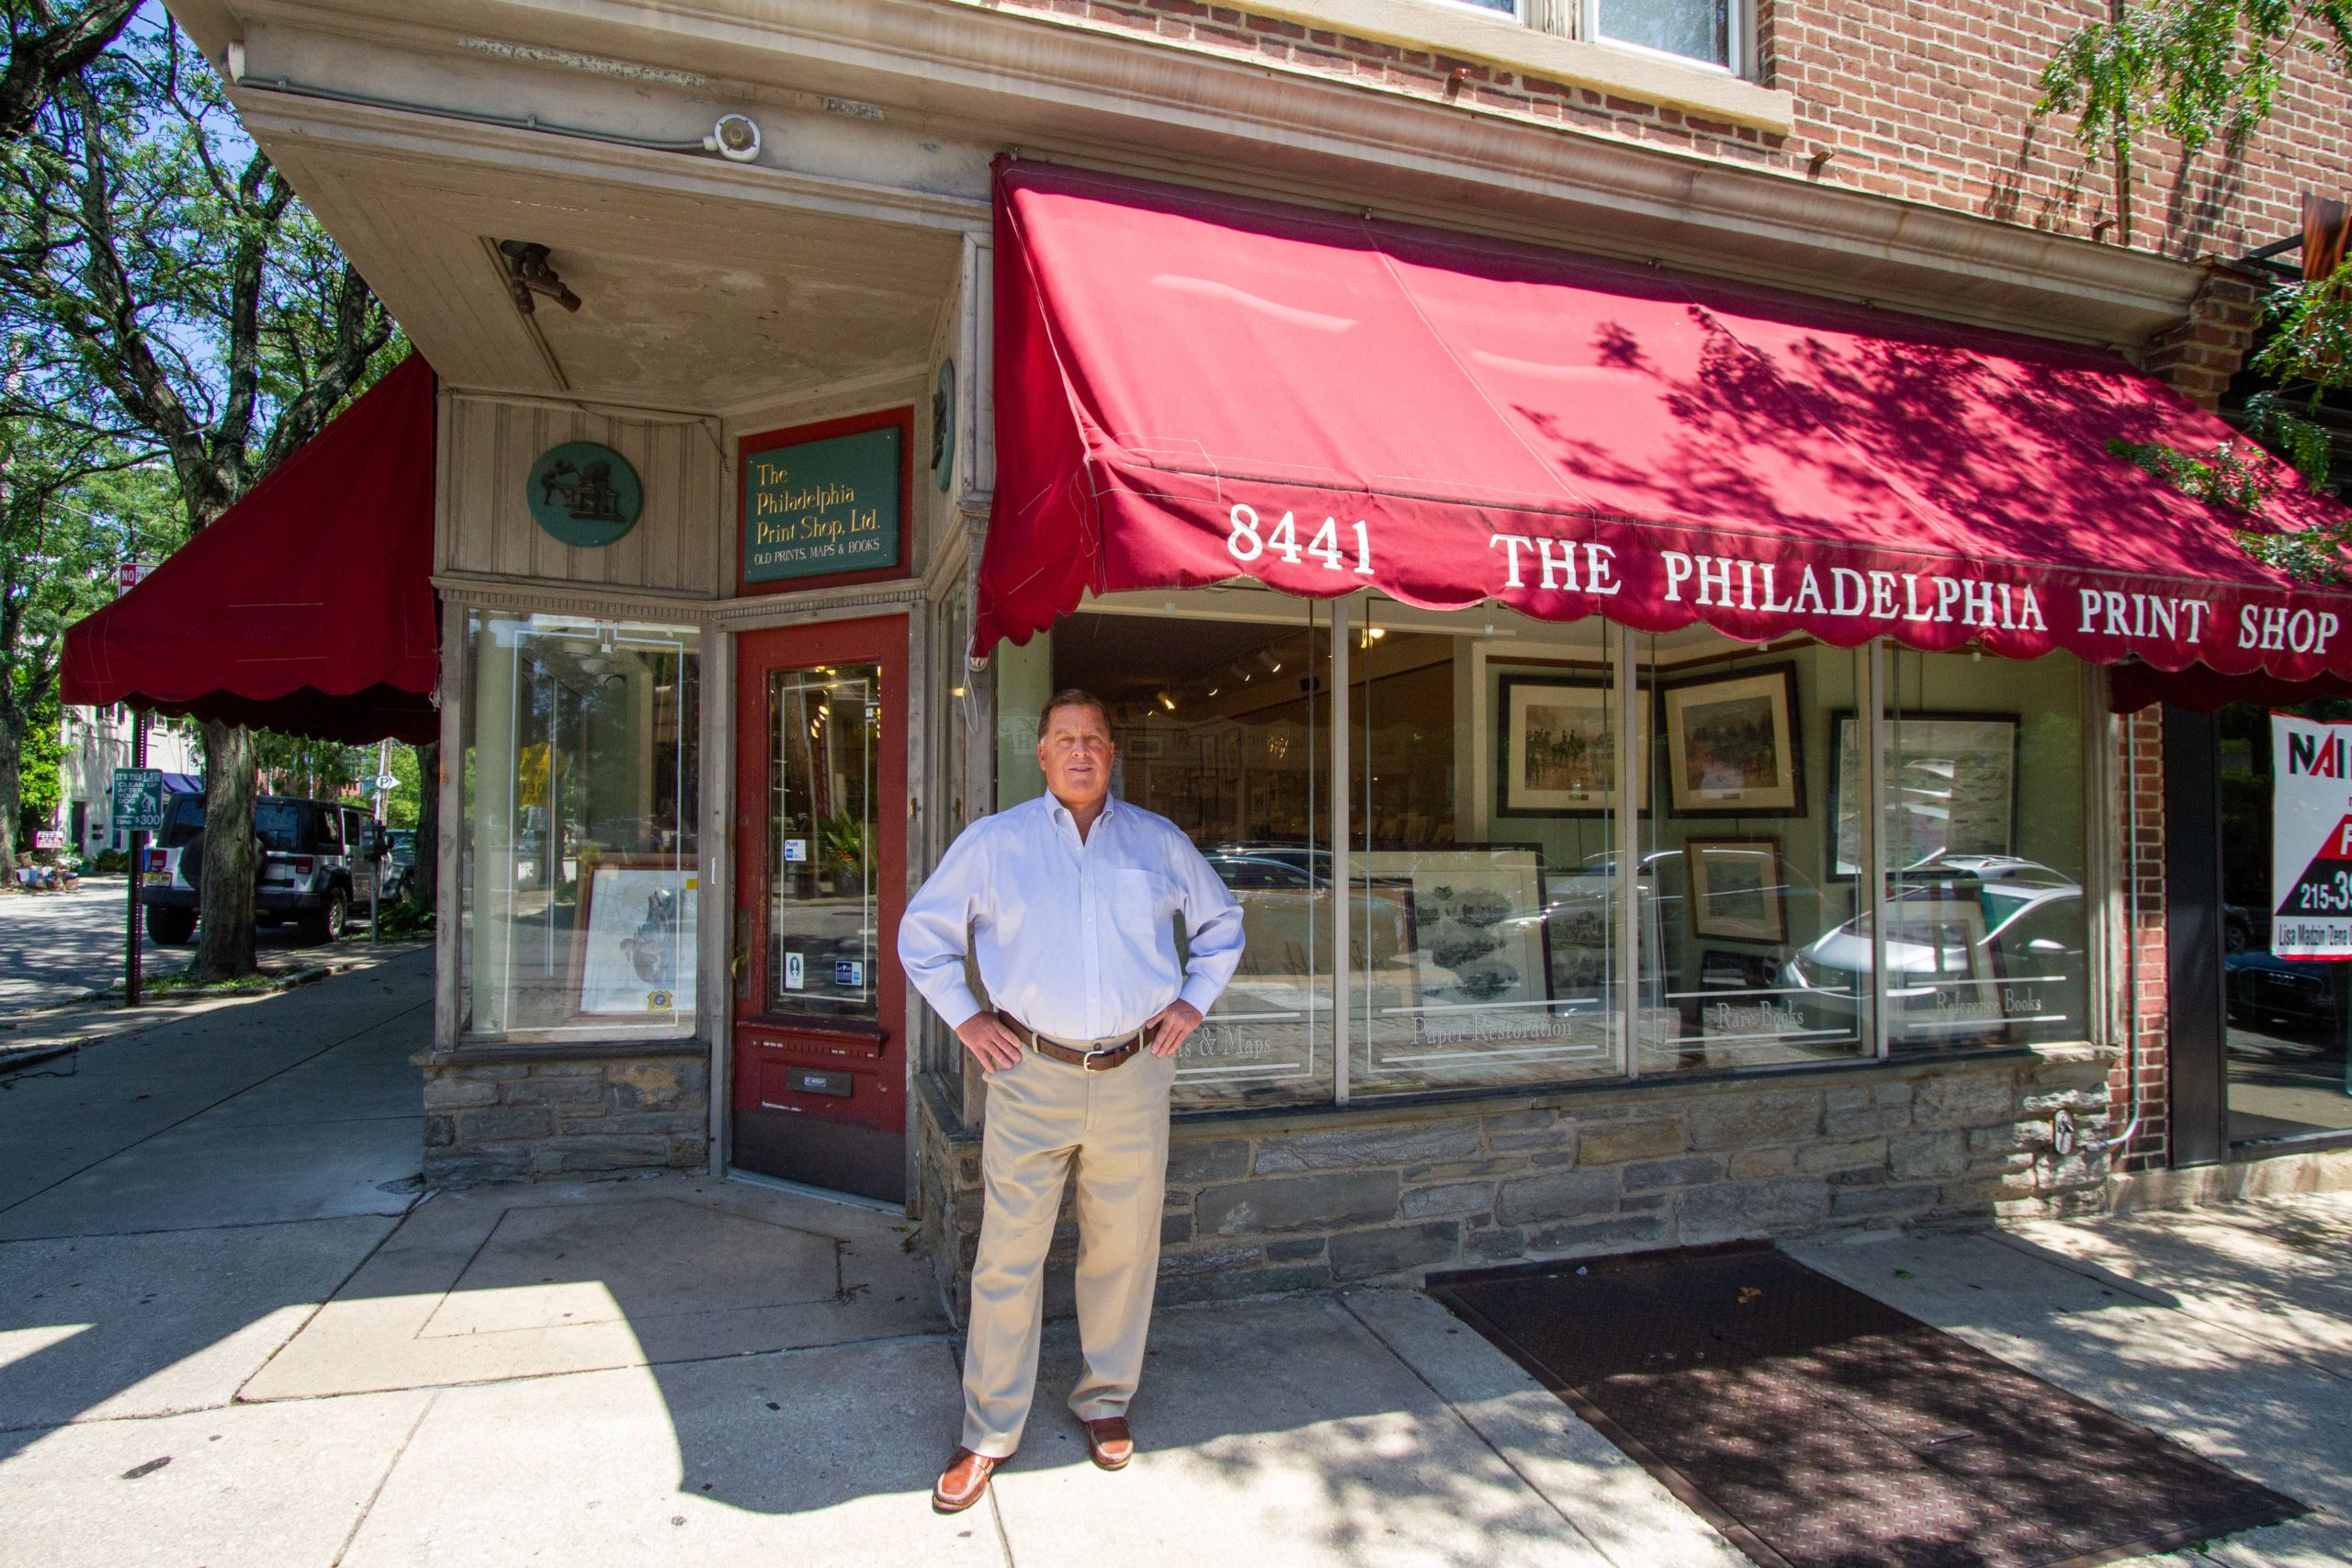 Local Man Puts Philadelphia Print Shop 'Back on the Map' with Its Acquisition, Relocation to Wayne